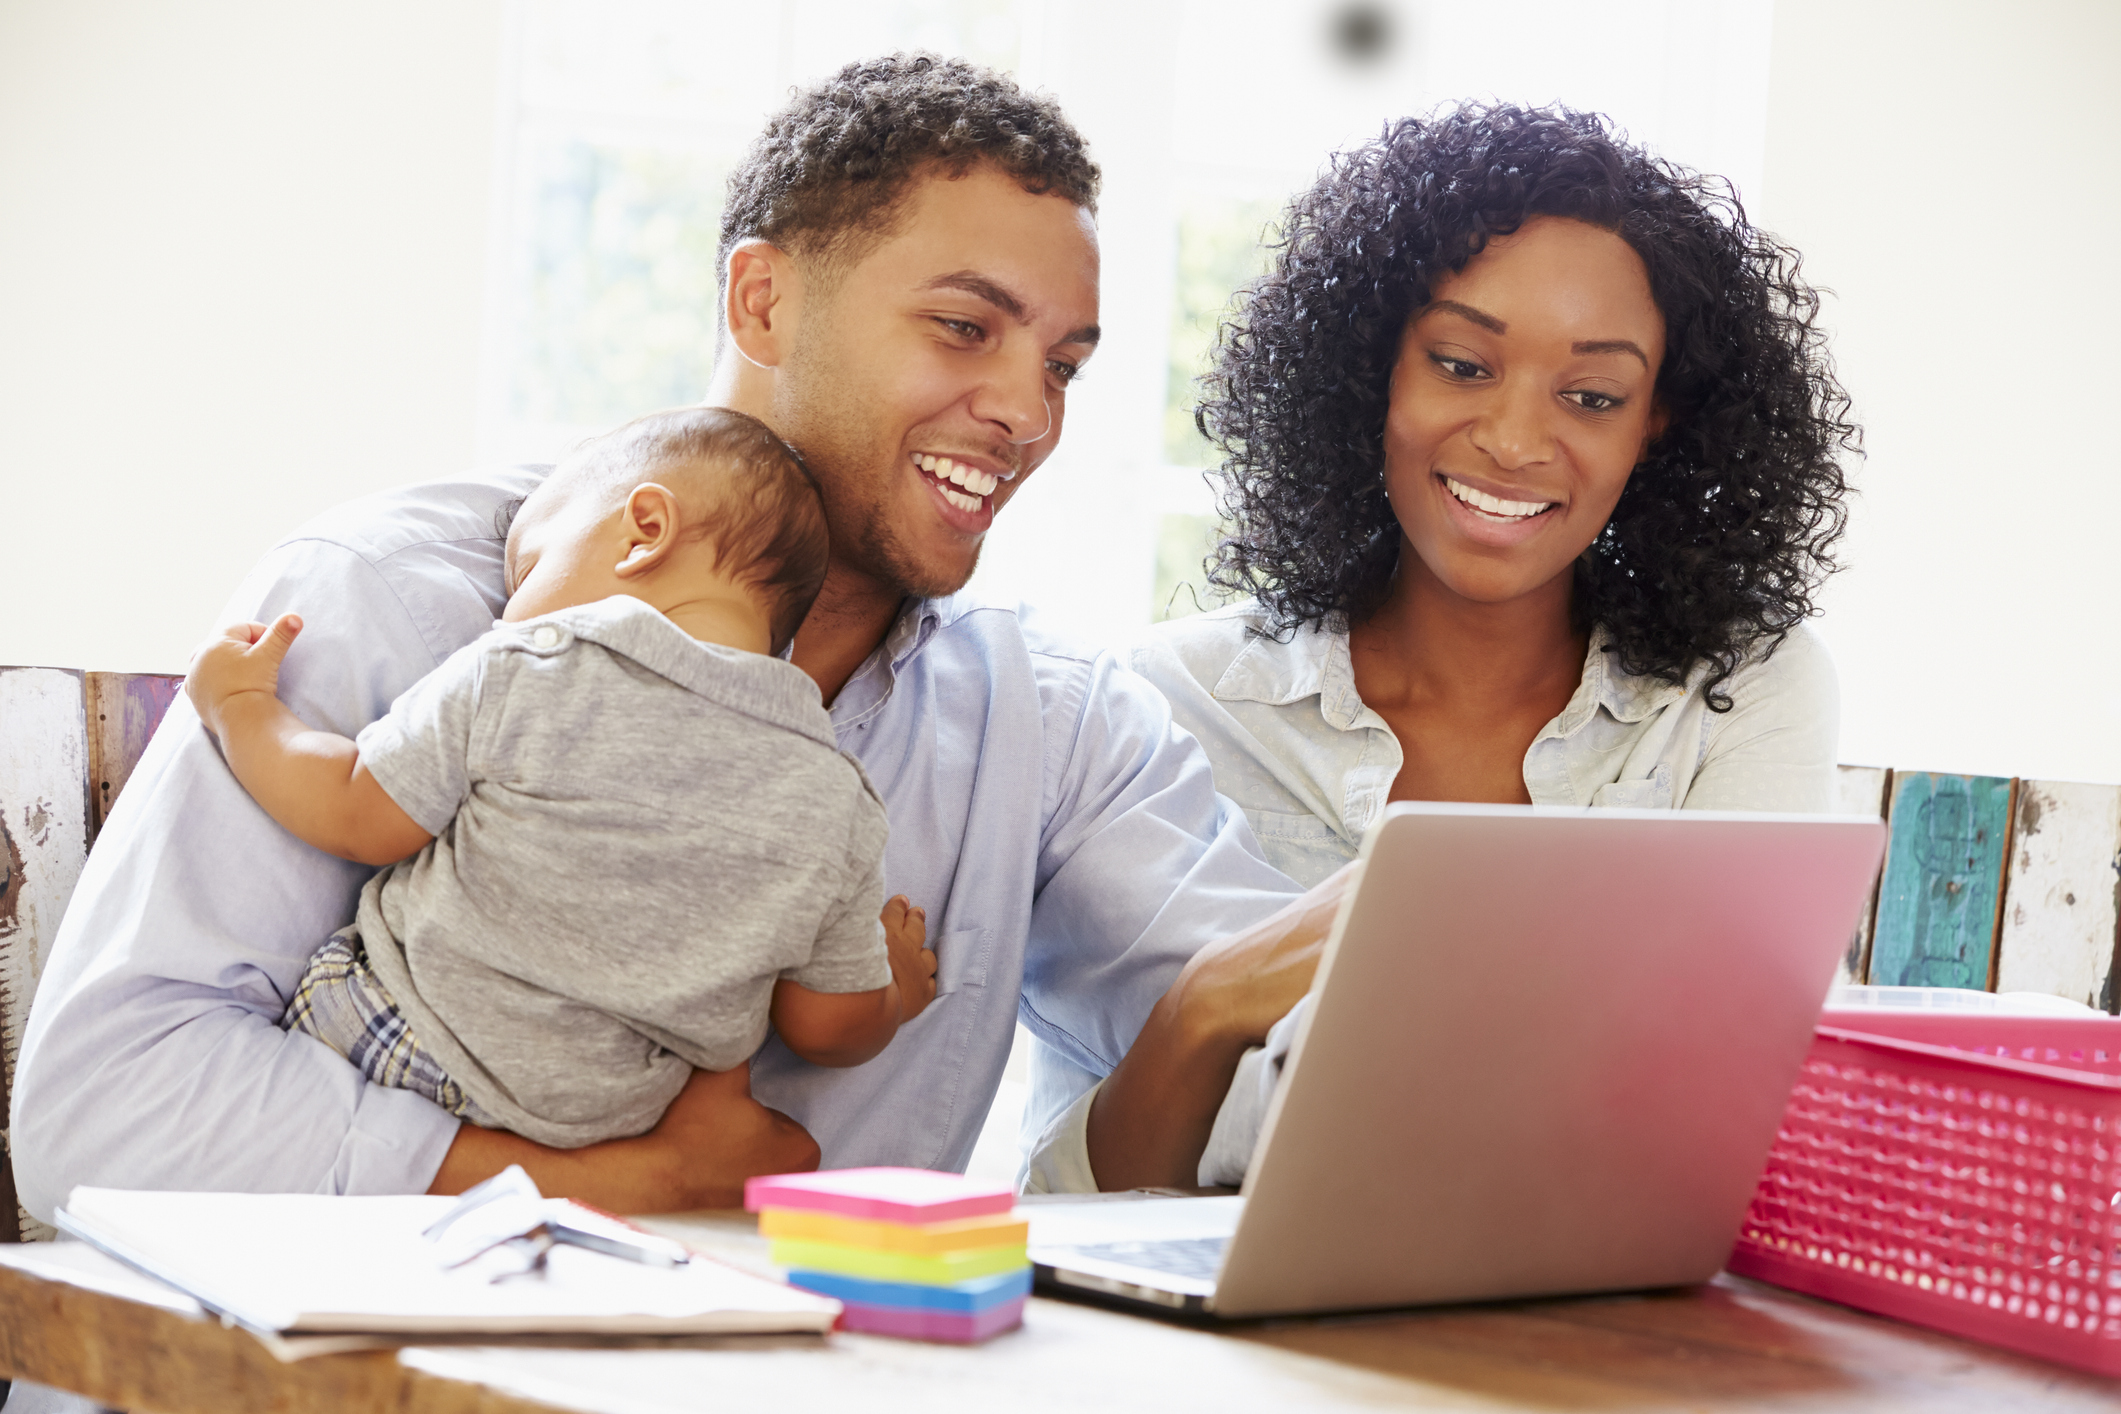 Parents With Baby Working In Office At Home Looking At Laptop Smiling